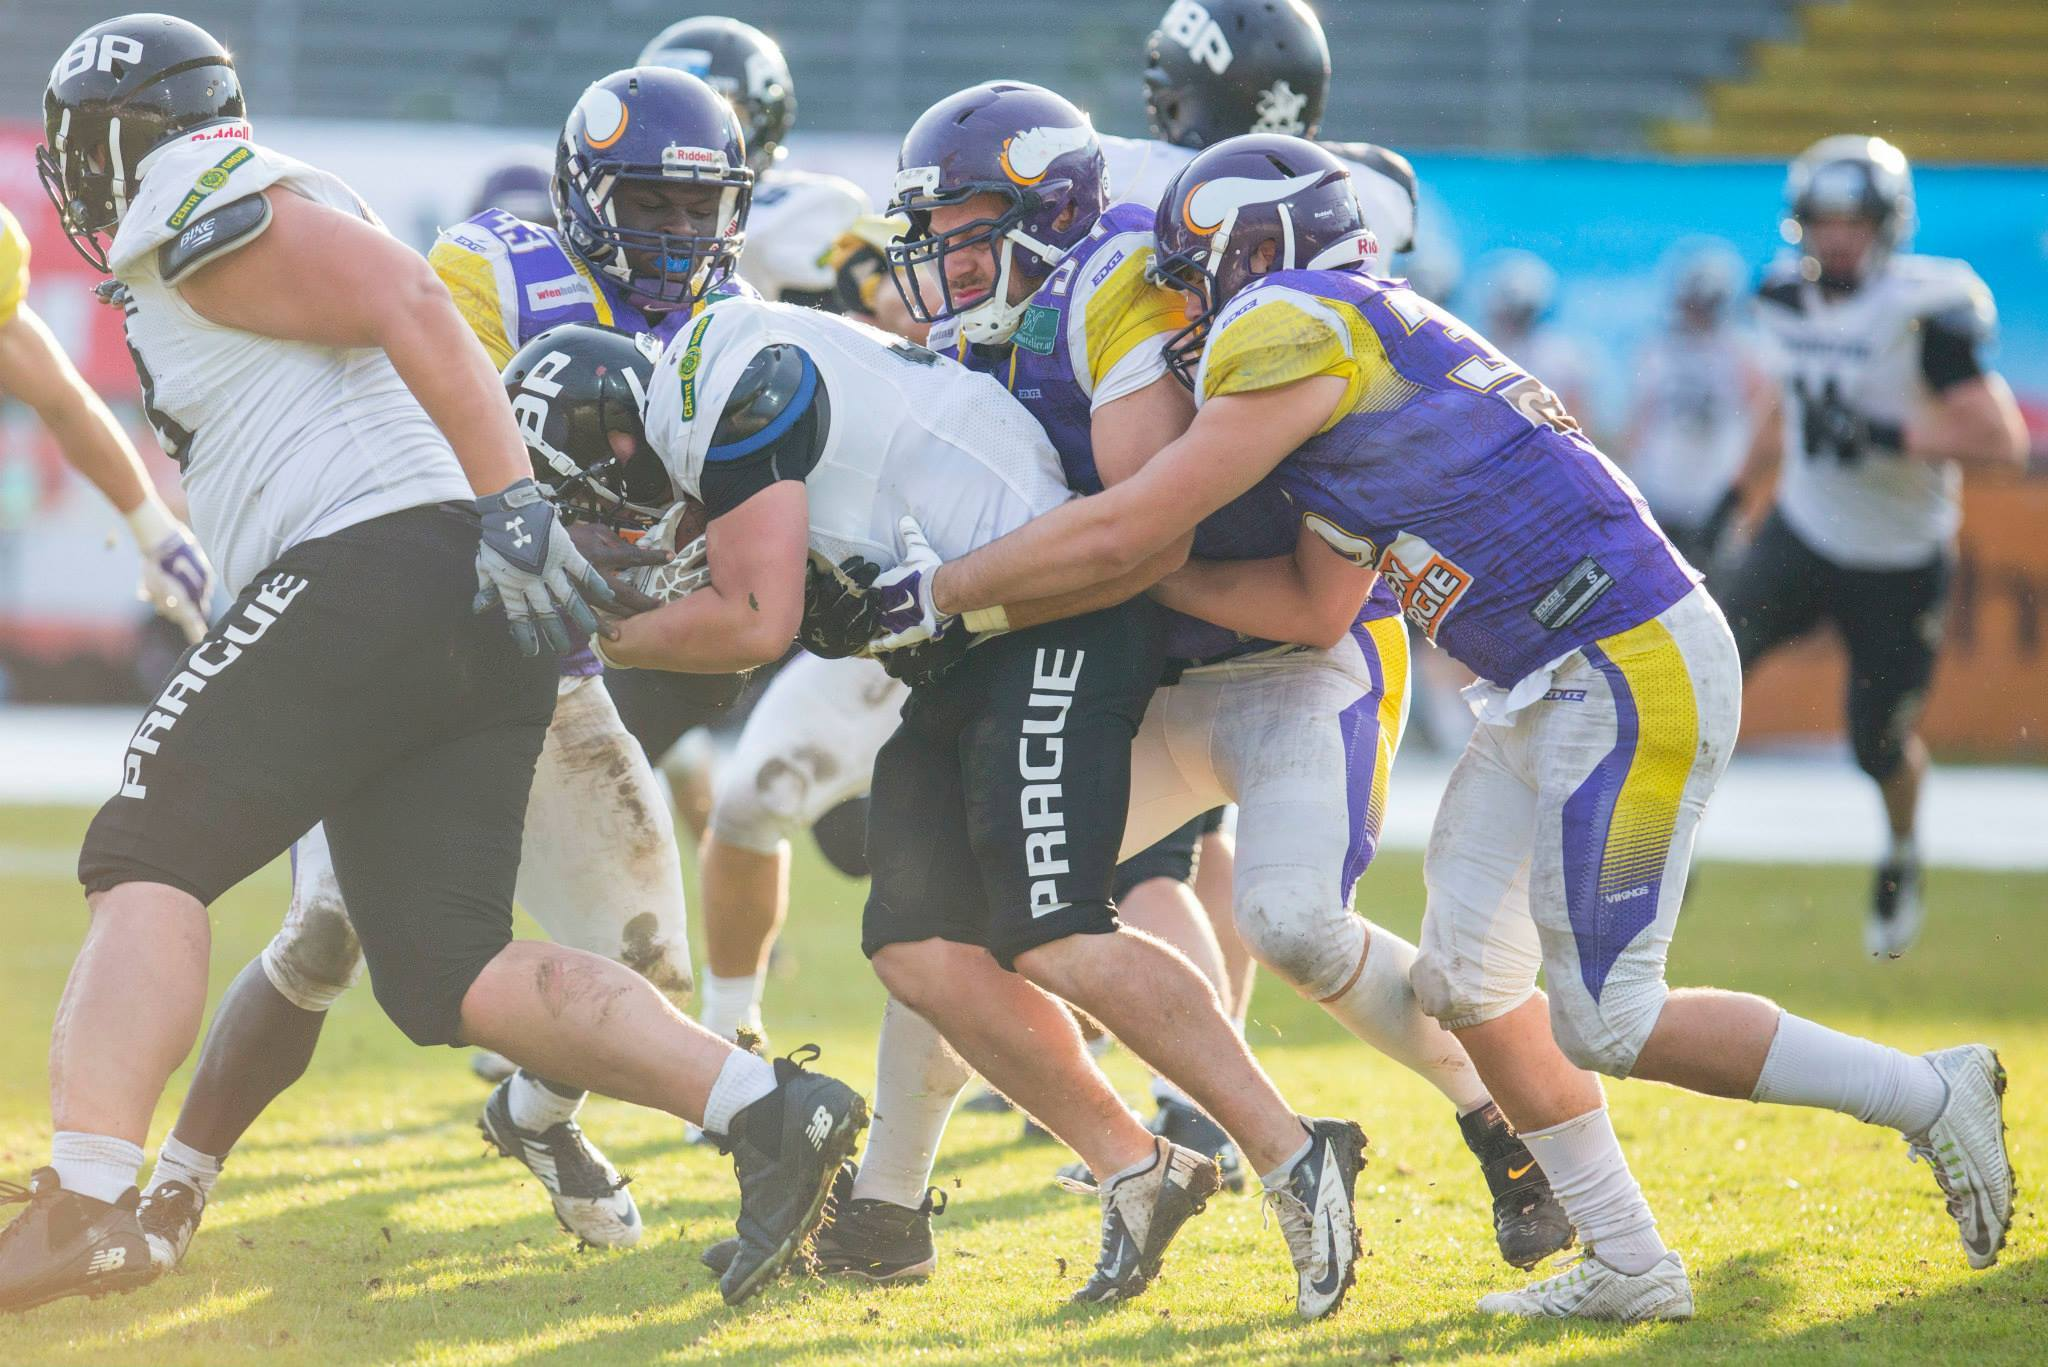 Vienna Vikings vs PBP 2015 - foto Holly Kellner